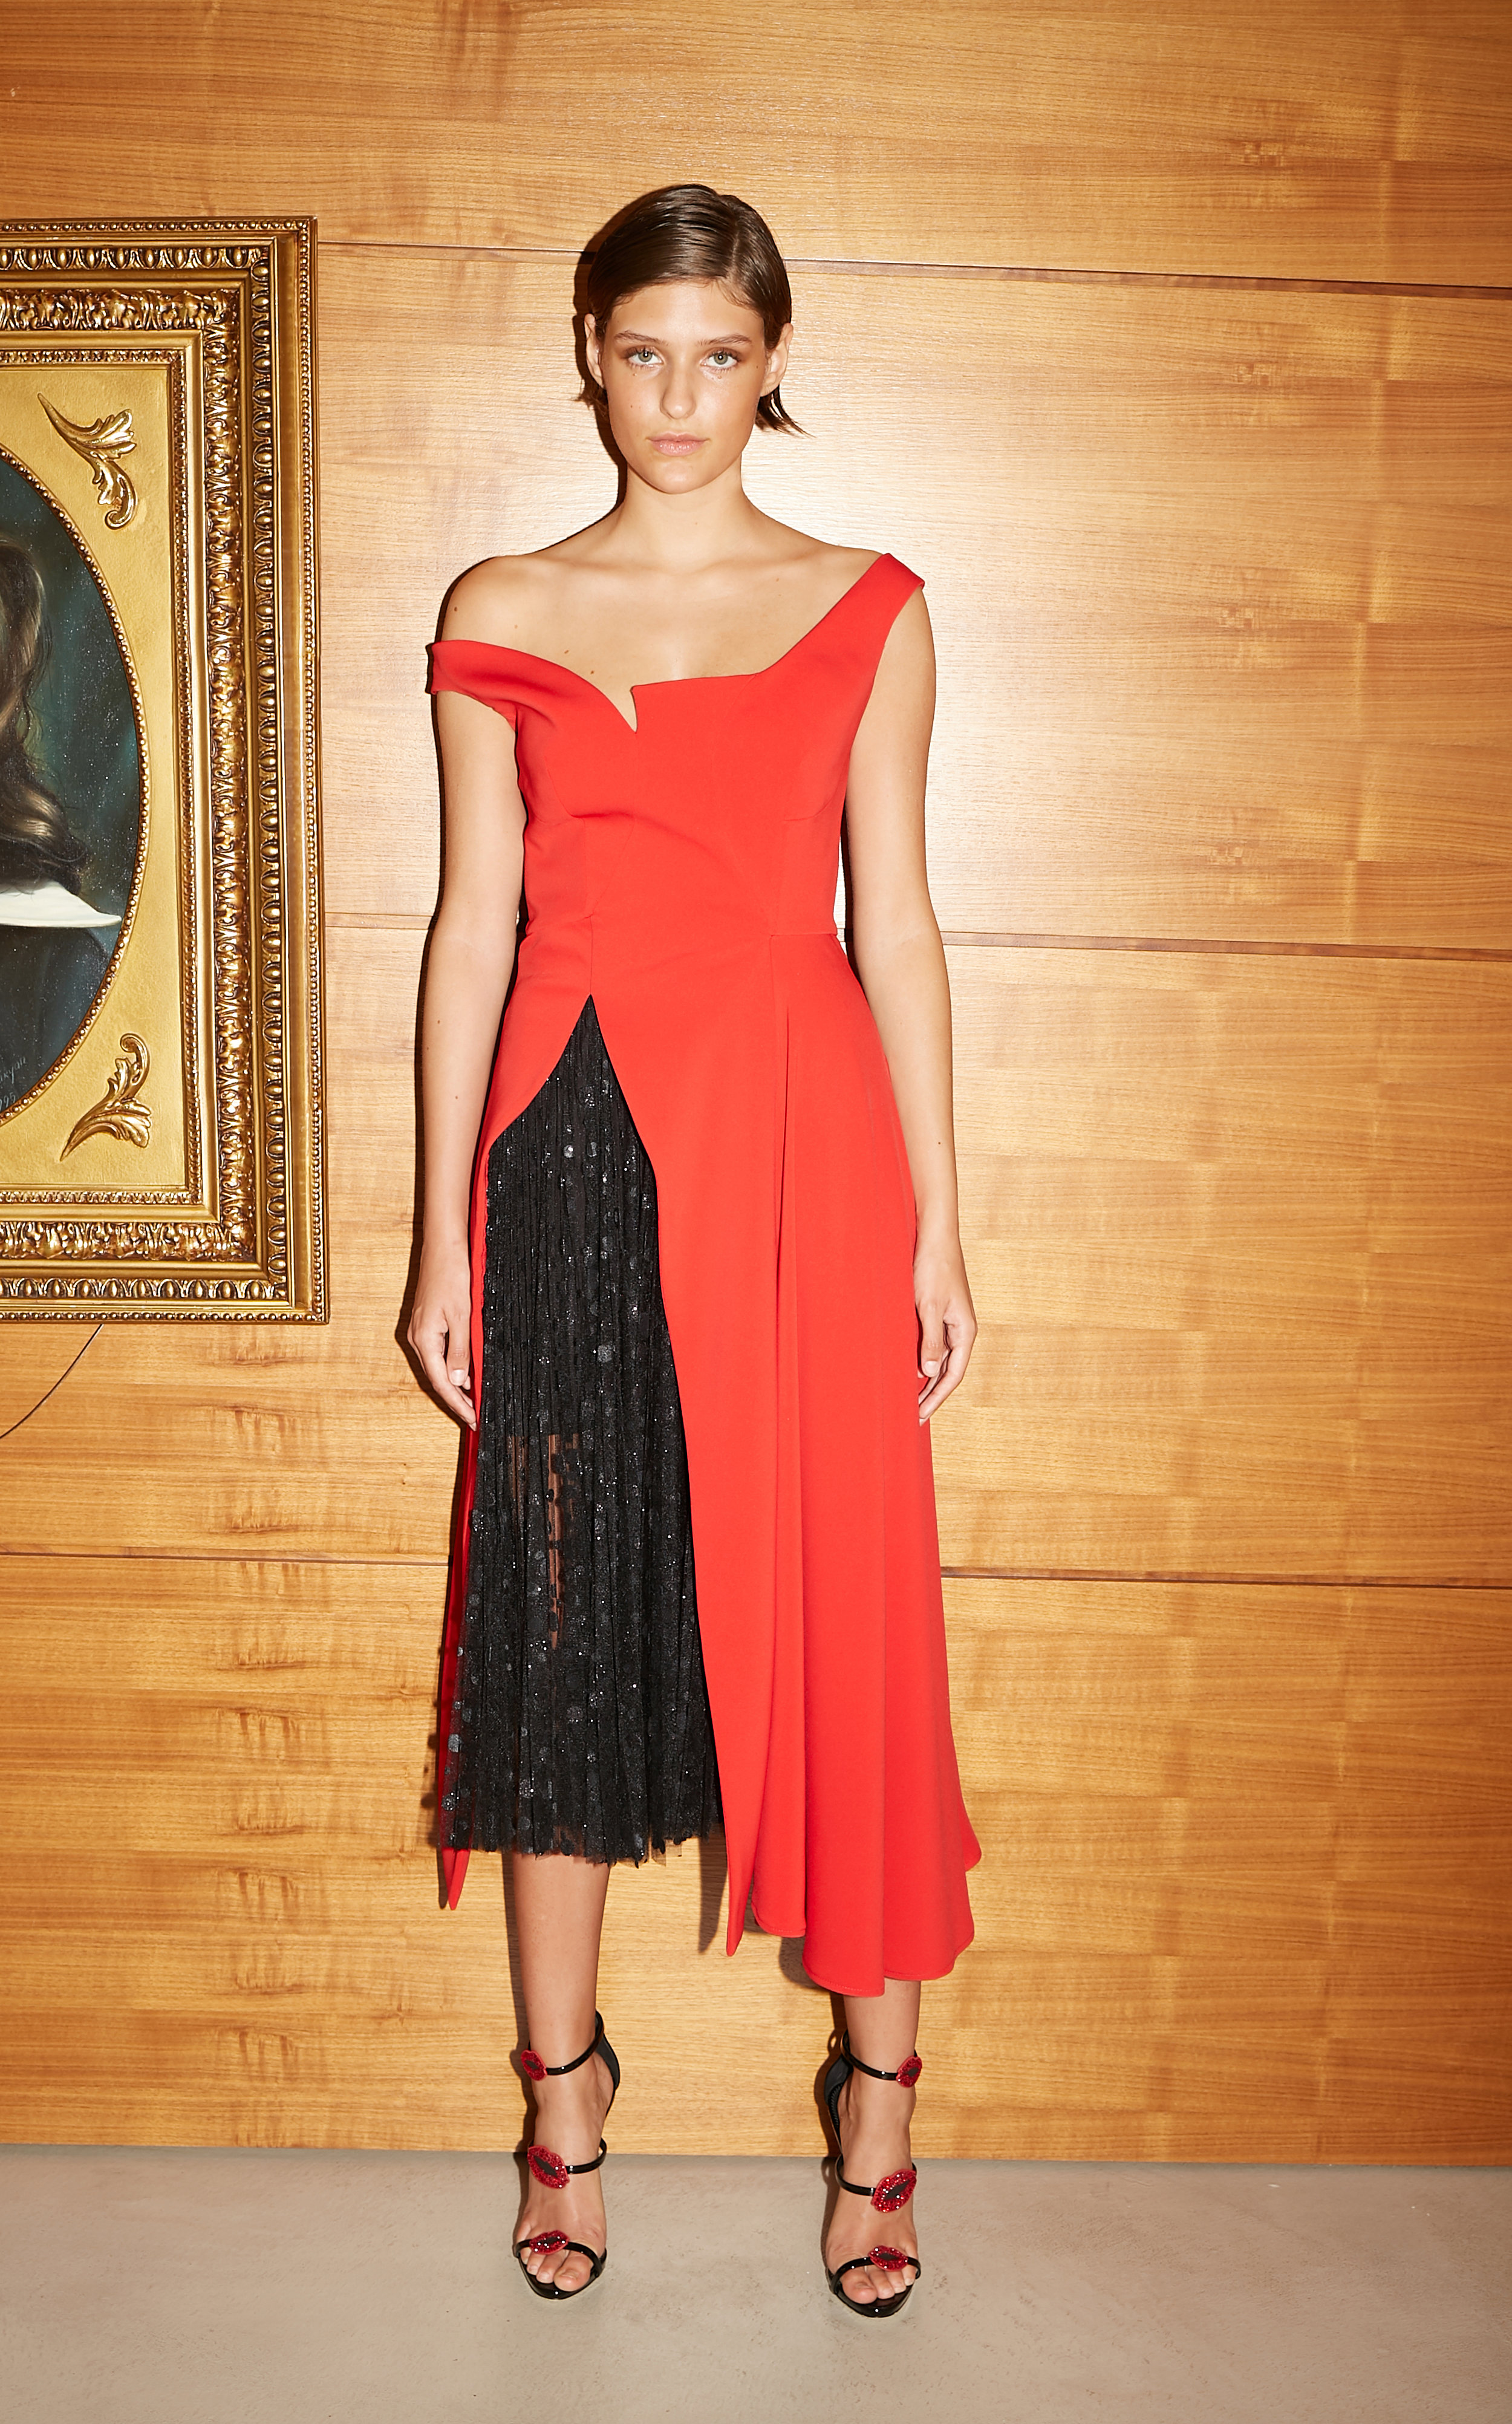 Model stands in sleeveless red tea length dress with asymmetric neckline and off centered slit revealing black sparkling tulle under skirt